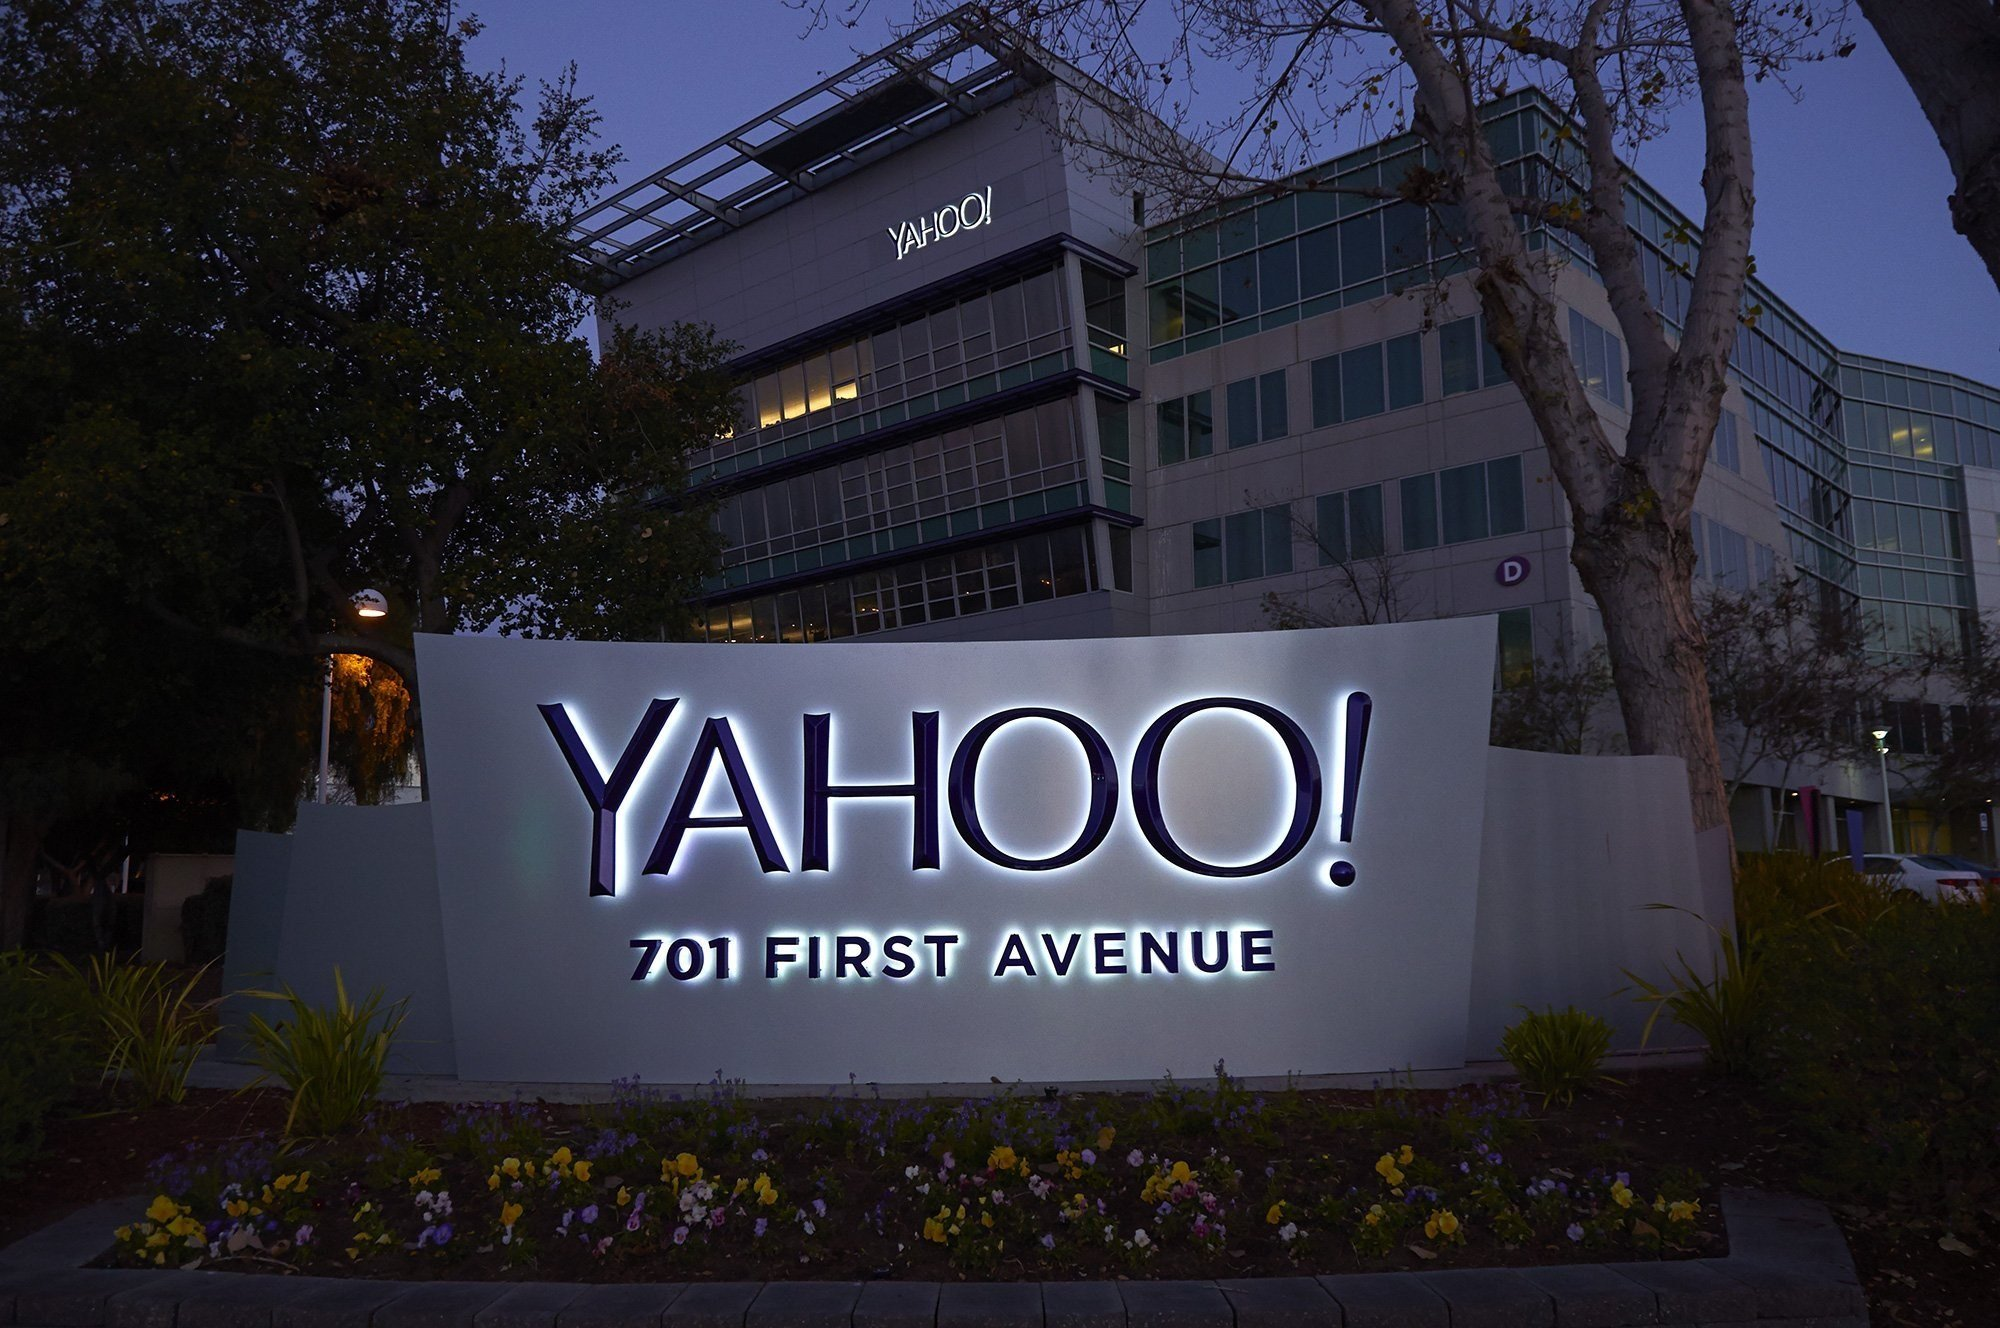 Yahoo reveals 2014 hack which compromised 500 million users